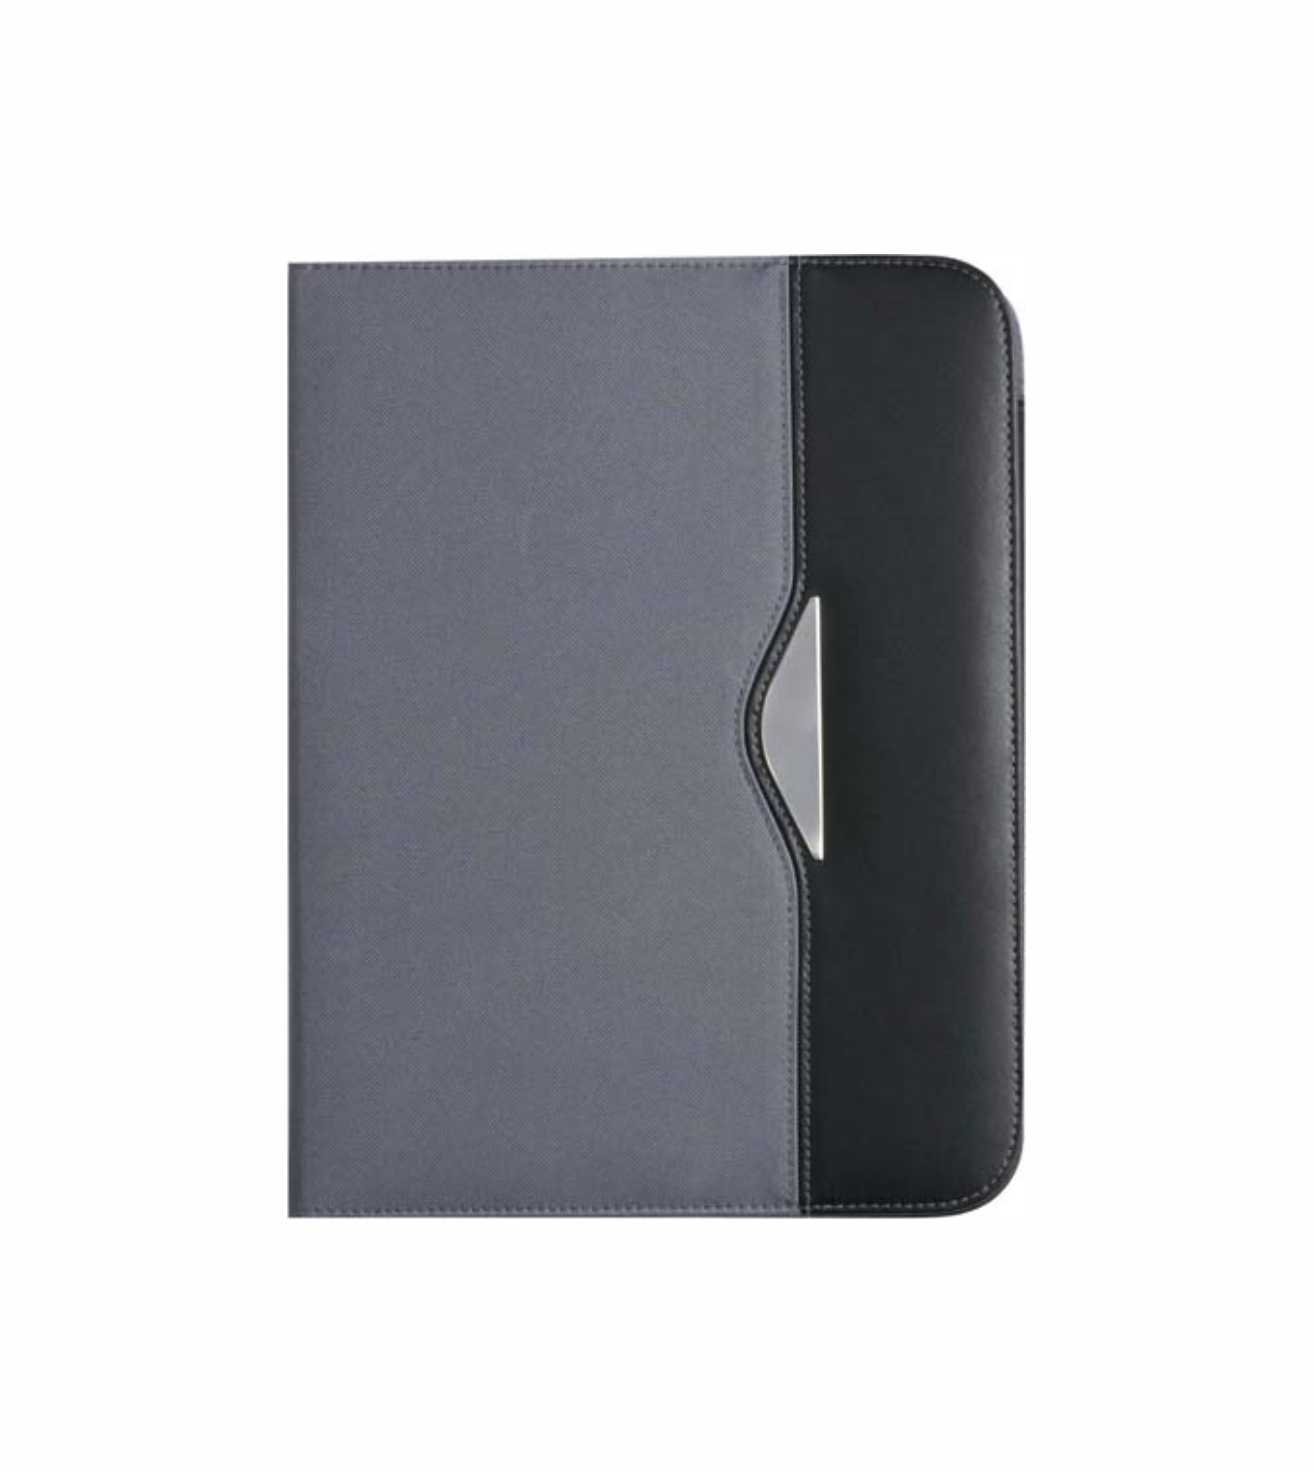 A4 nylon conference folder (70D) with two large internal pockets and two small business card pockets, nylon pen loop and a thirty page lined note pad. - Grey giv-866803